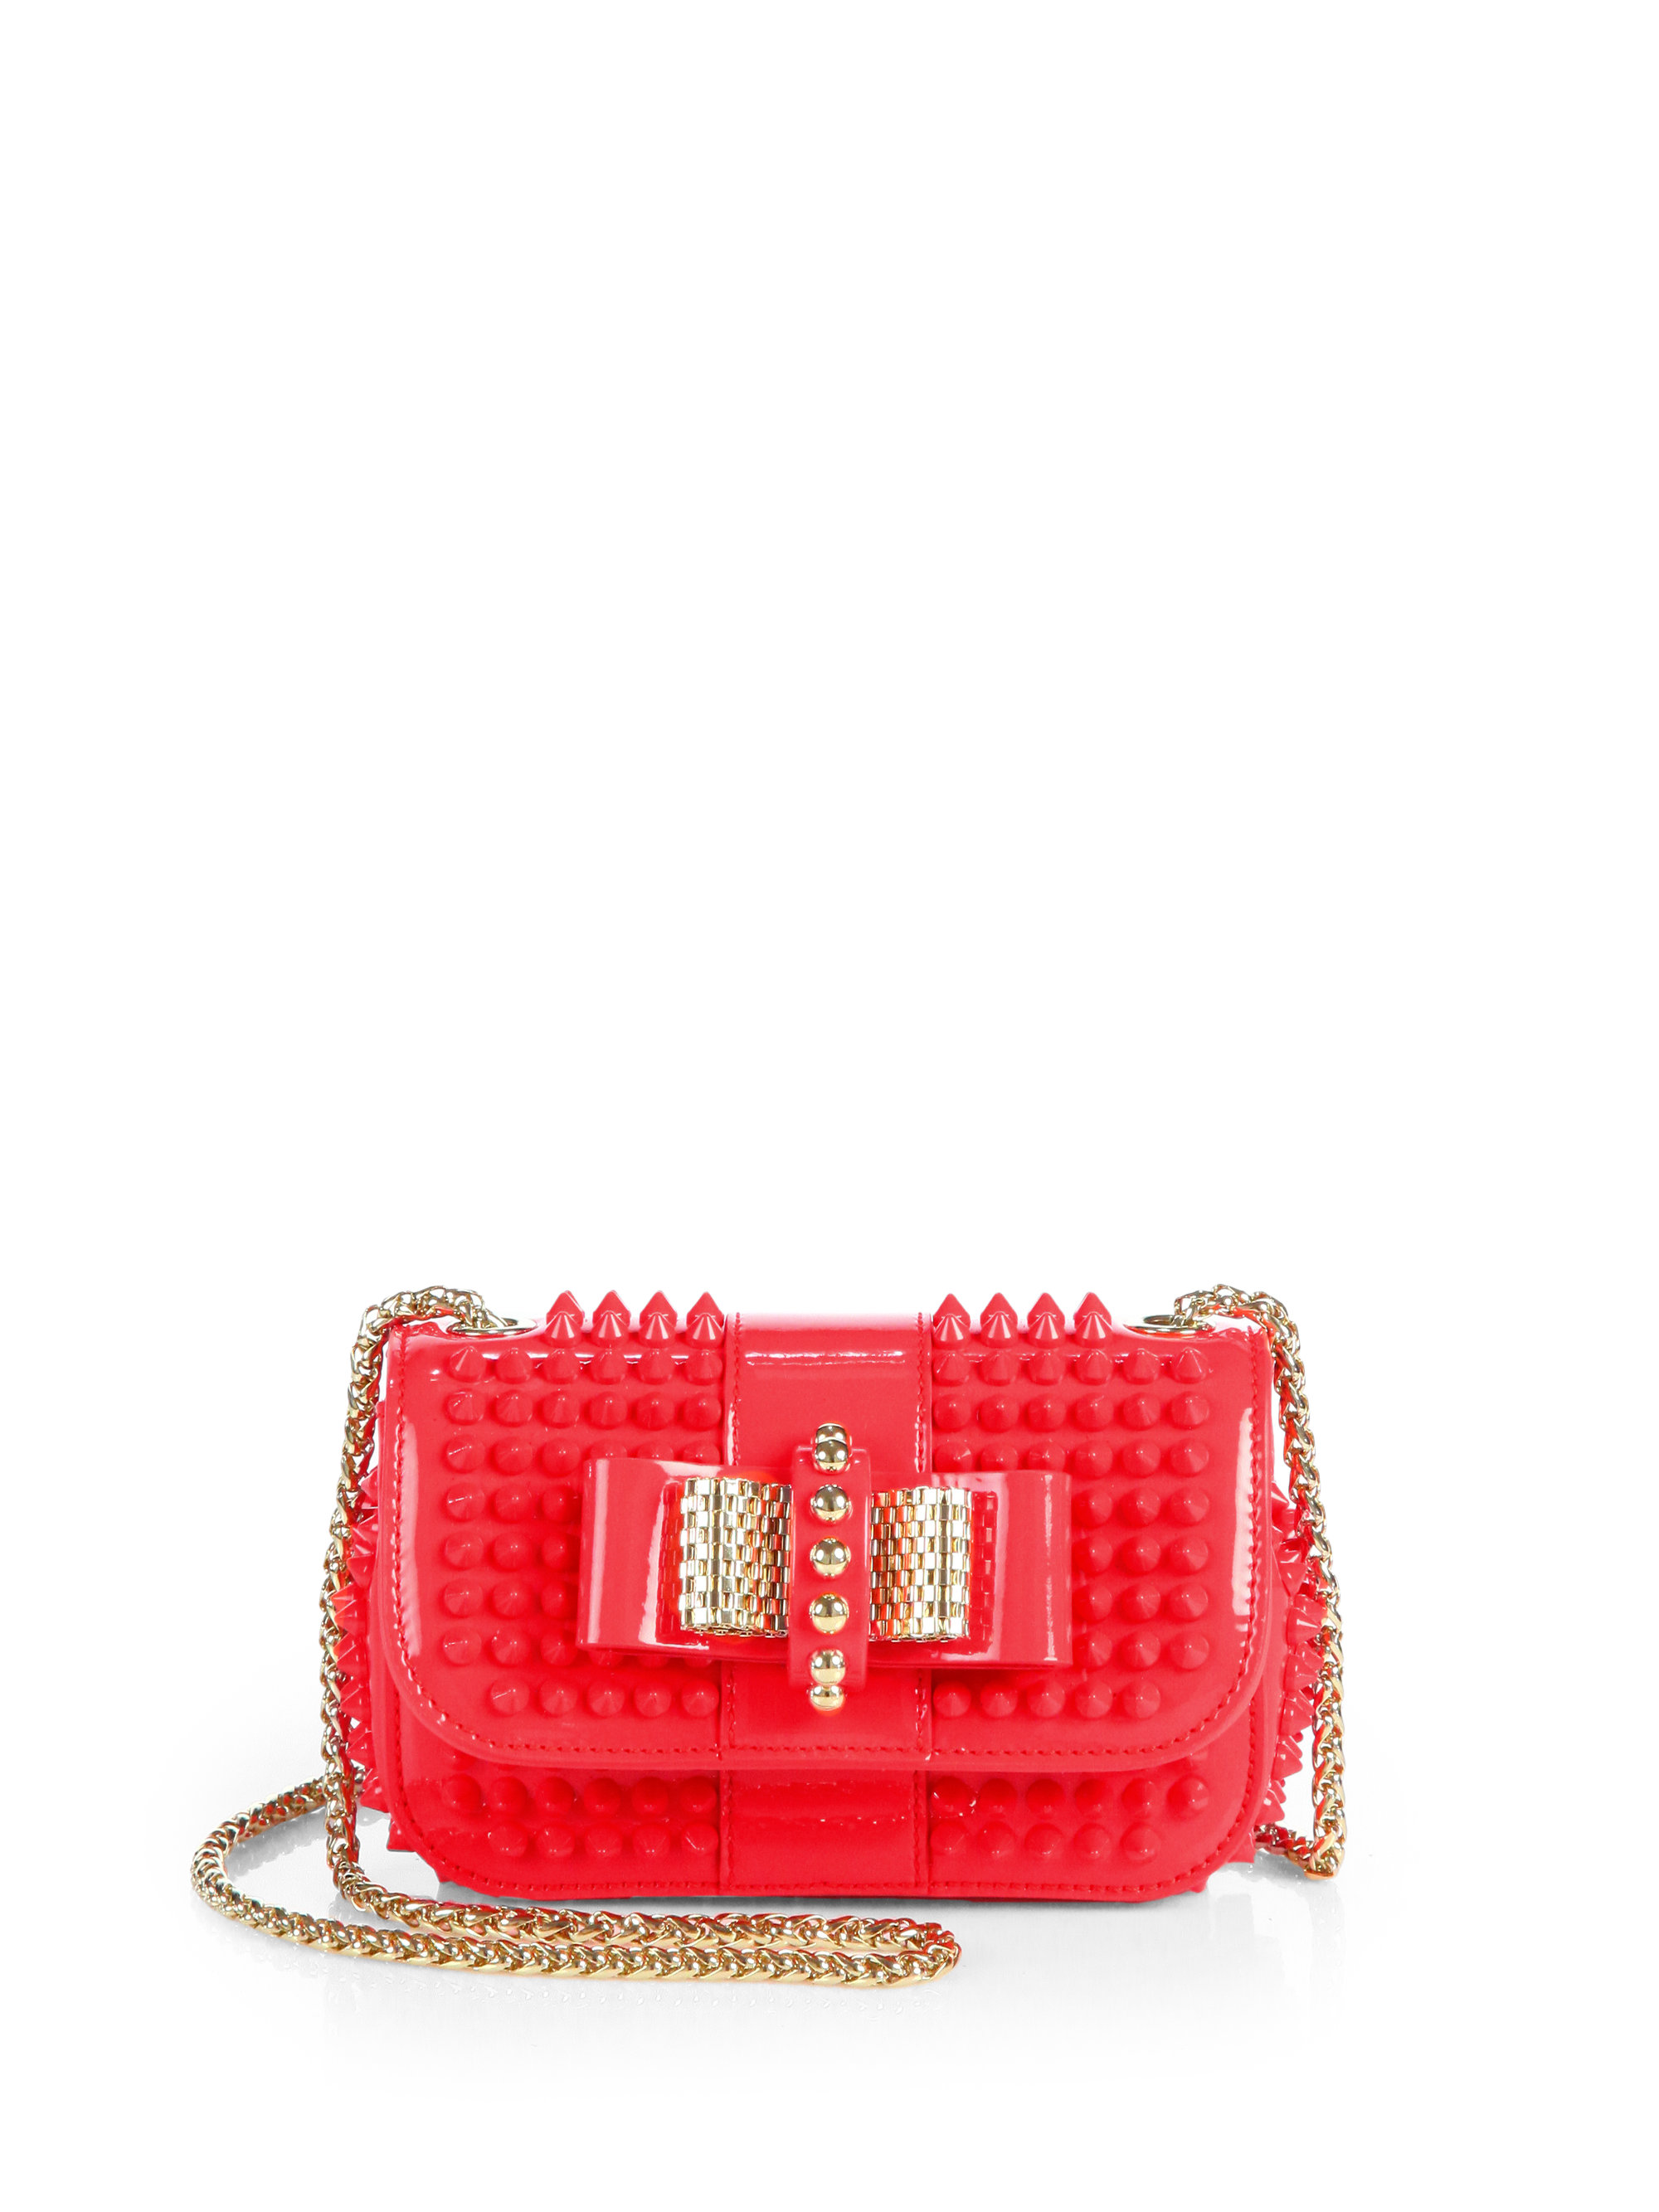 71064655178 Christian Louboutin Red Leather Spiked 'Sweet Charity' Shoulder Bag